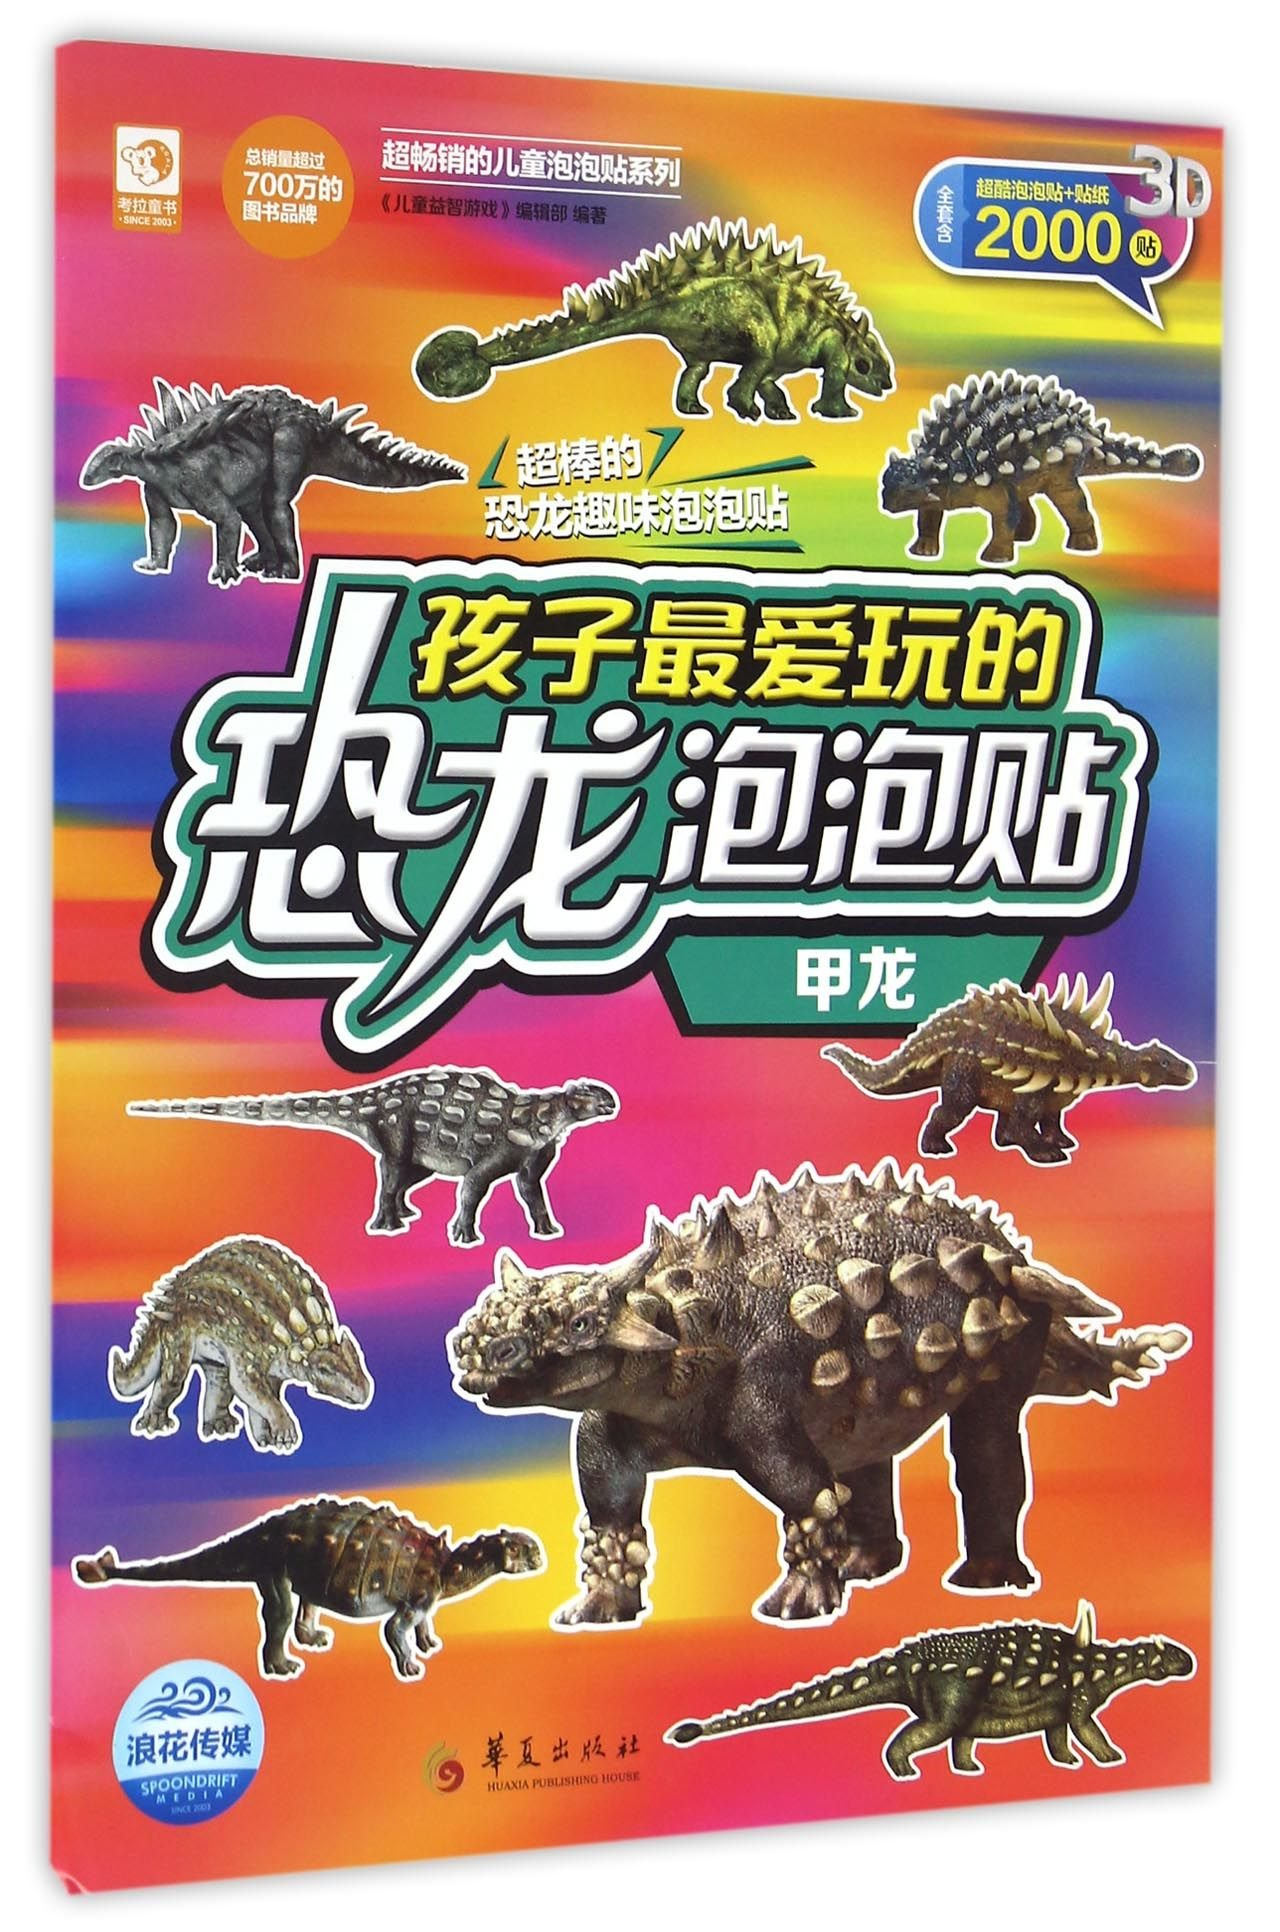 Children's Favorite Dinosaur Bubble Stickers (Ankylosaur) (Chinese Edition) pdf